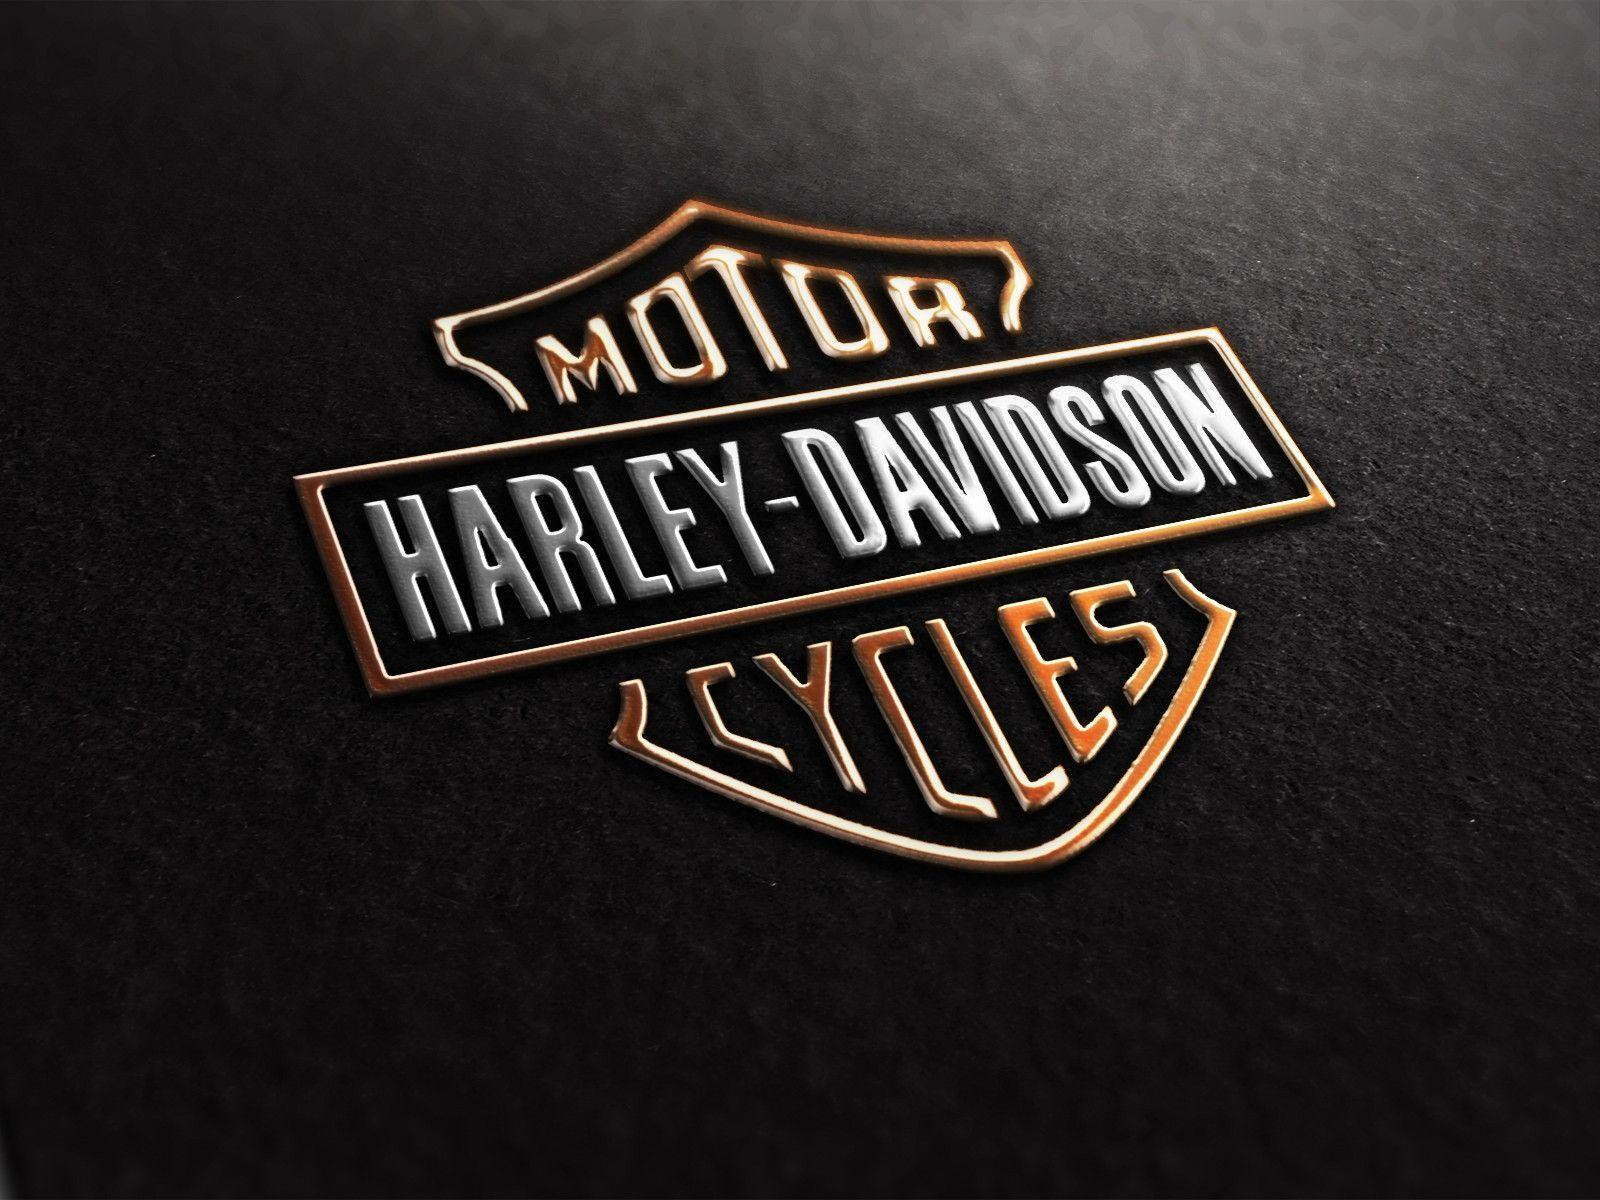 Harley Davidson Logo Wallpapers 1600x1200